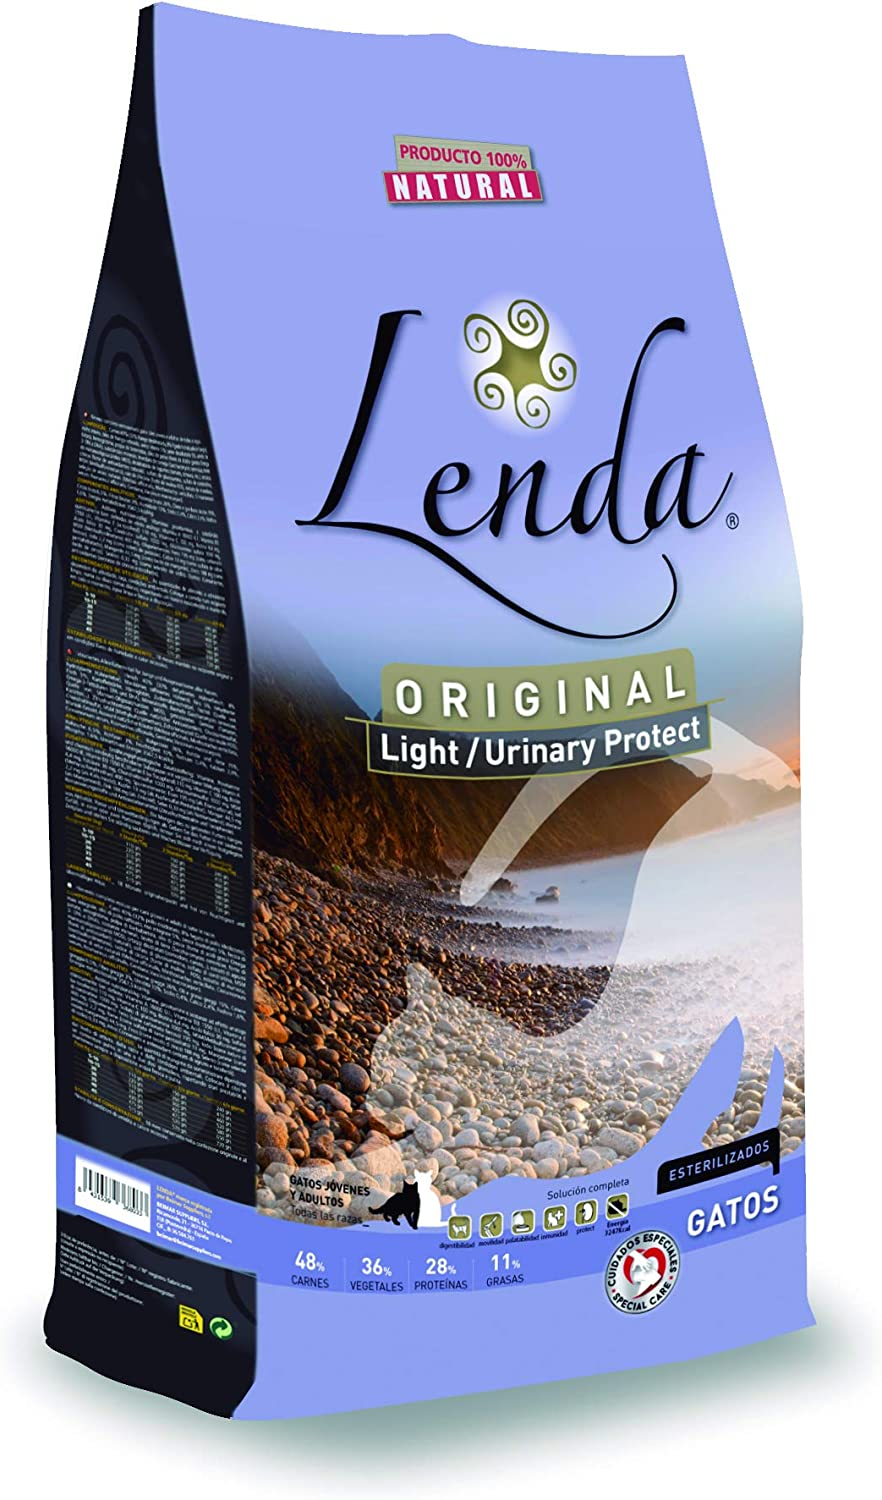 Lenda Original Adult Cat Urinary, Comida para Gatos - 2000 gr: Amazon.es: Productos para mascotas